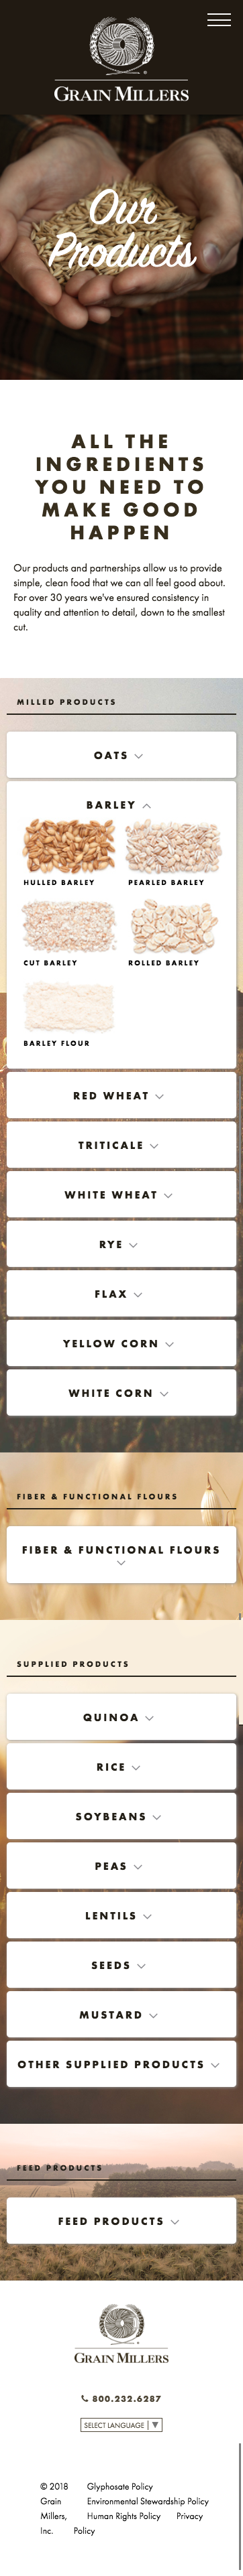 grainmillers product page